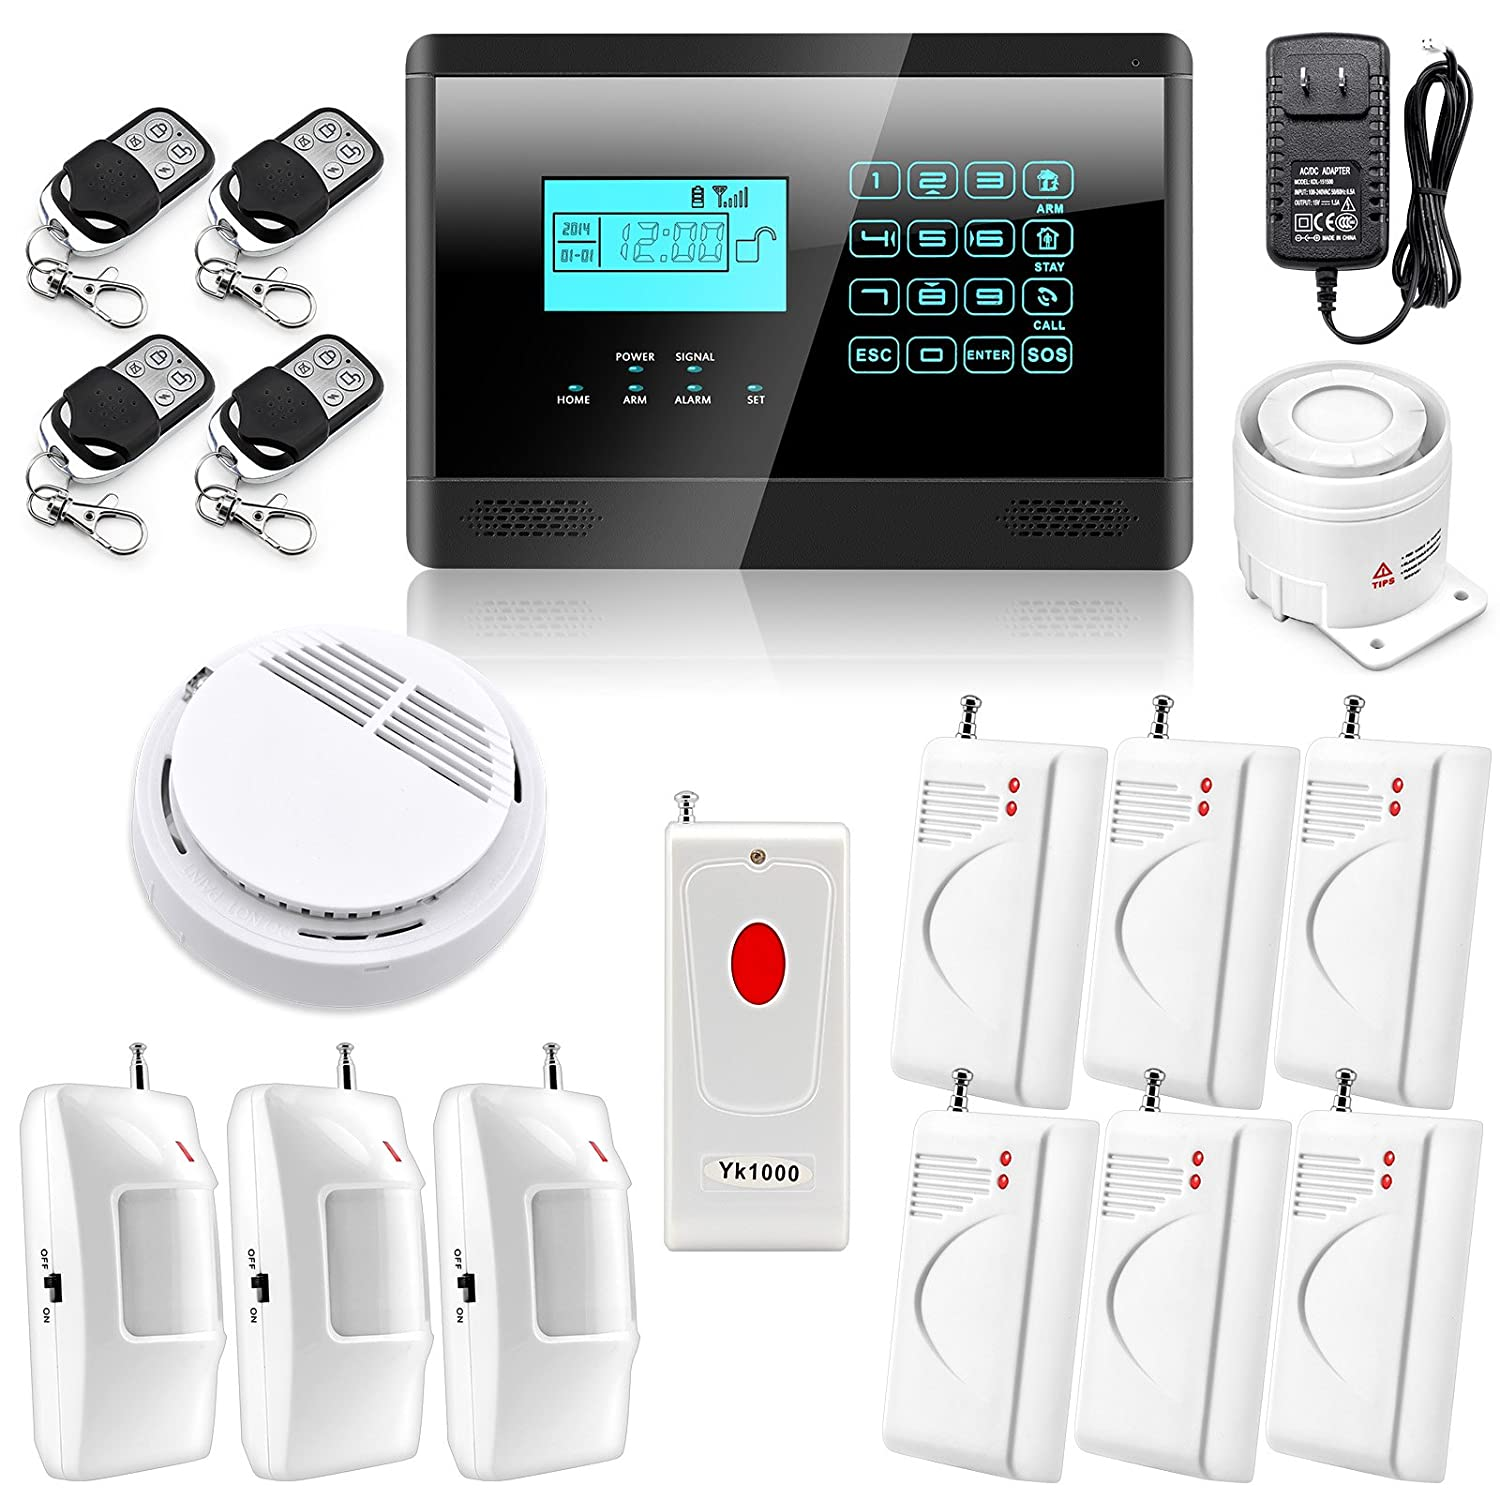 Wireless home security projects.